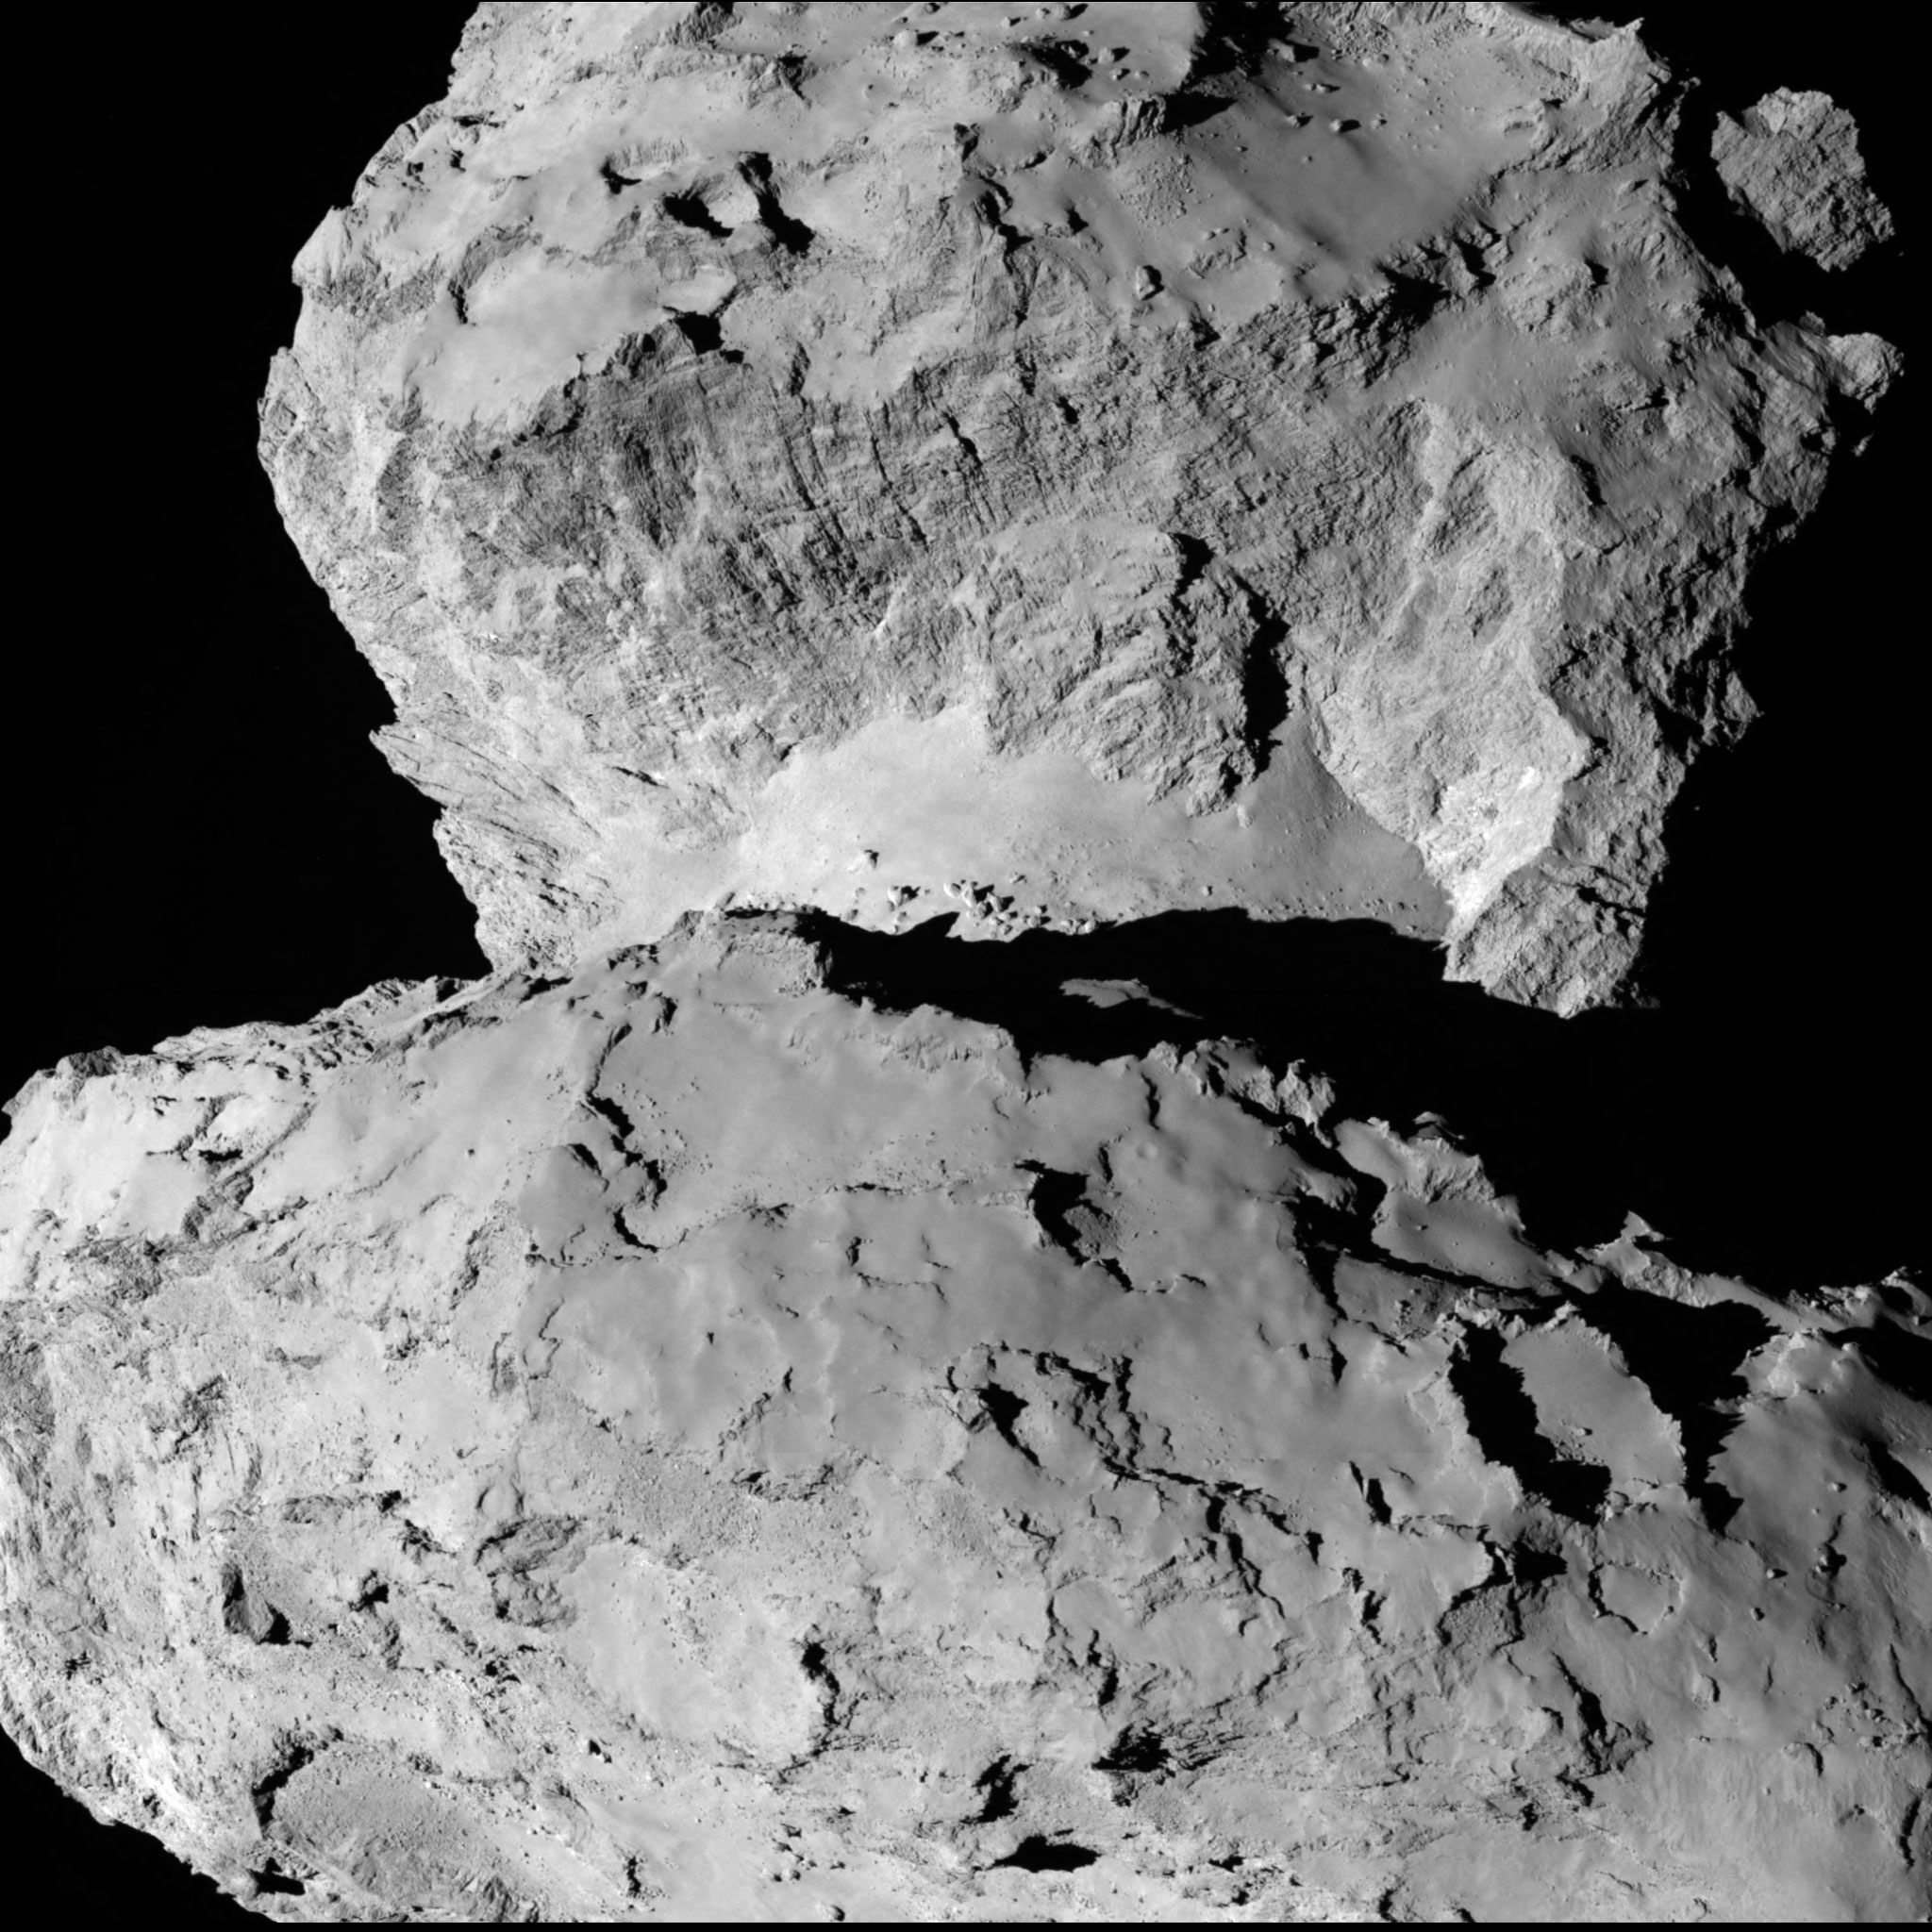 Rosetta's OSIRIS narrow angle camera captured this image of the comet on 7 August from a distance of 104 km. Credit: ESA/Rosetta/MPS for OSIRIS Team